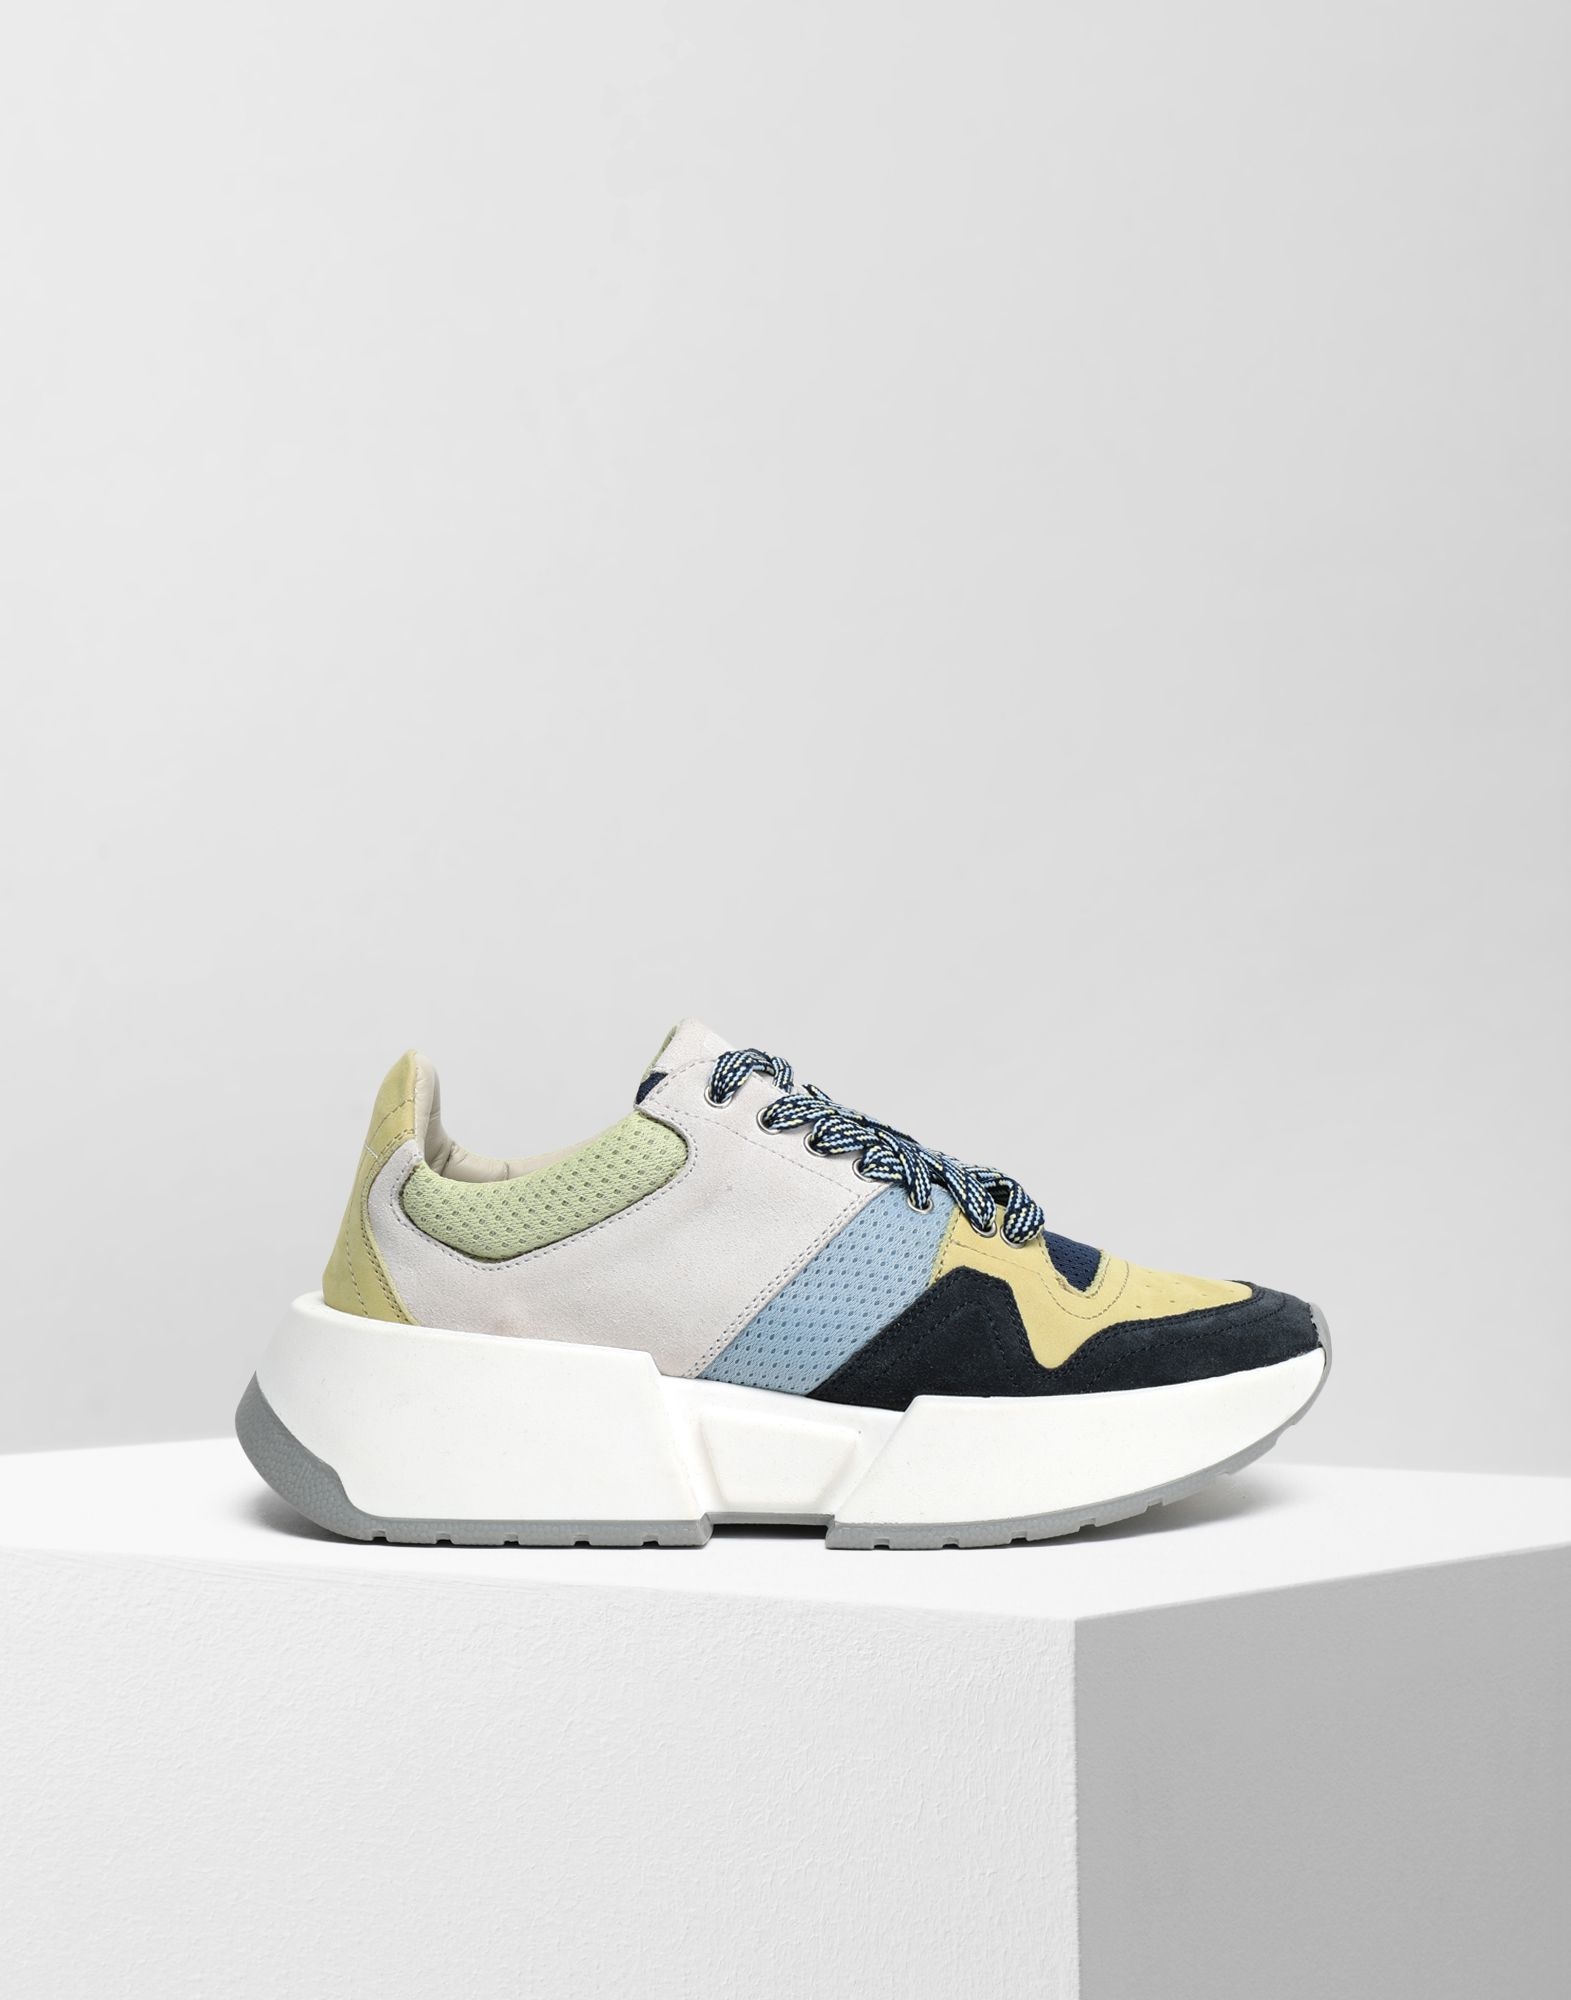 MM6 MAISON MARGIELA Sneakers in pelle multicolor Sneakers Donna f